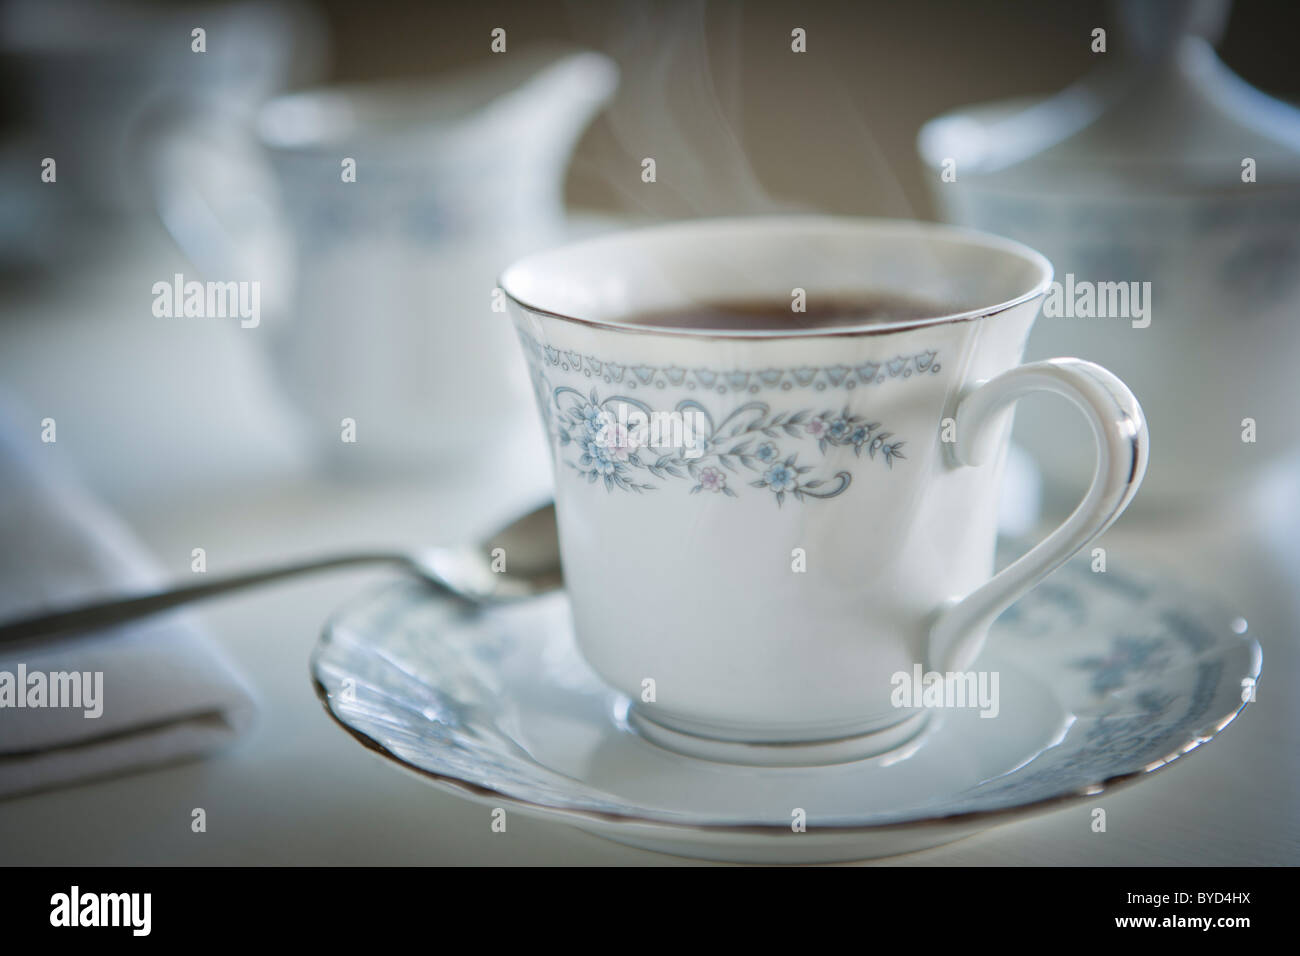 Steaming cup of tea in fine china - Stock Image